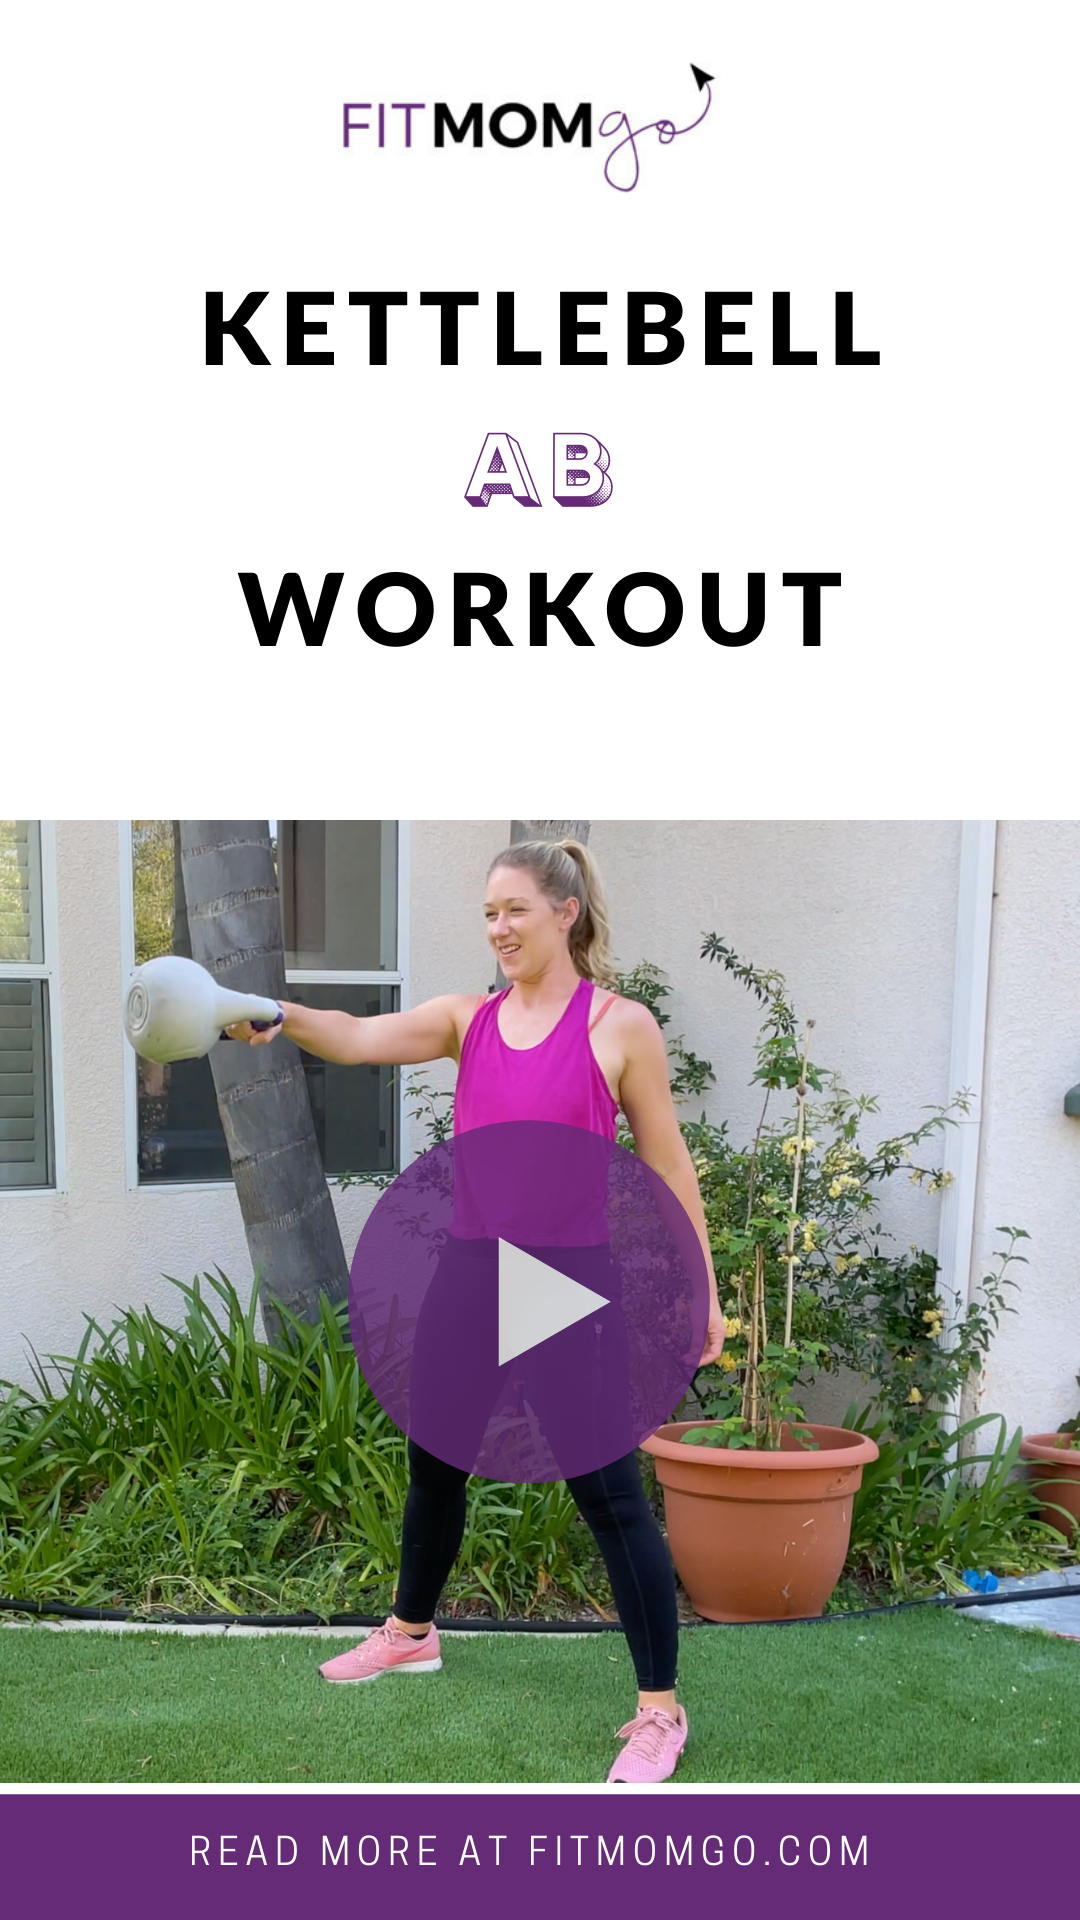 10 Minute Kettle Bell Ab Workout #abworkout #coreworkout #kettlebellworkout #kettlebellcoreworkout #kettlebellcore #quickworkout #shortworkout #workoutvideos